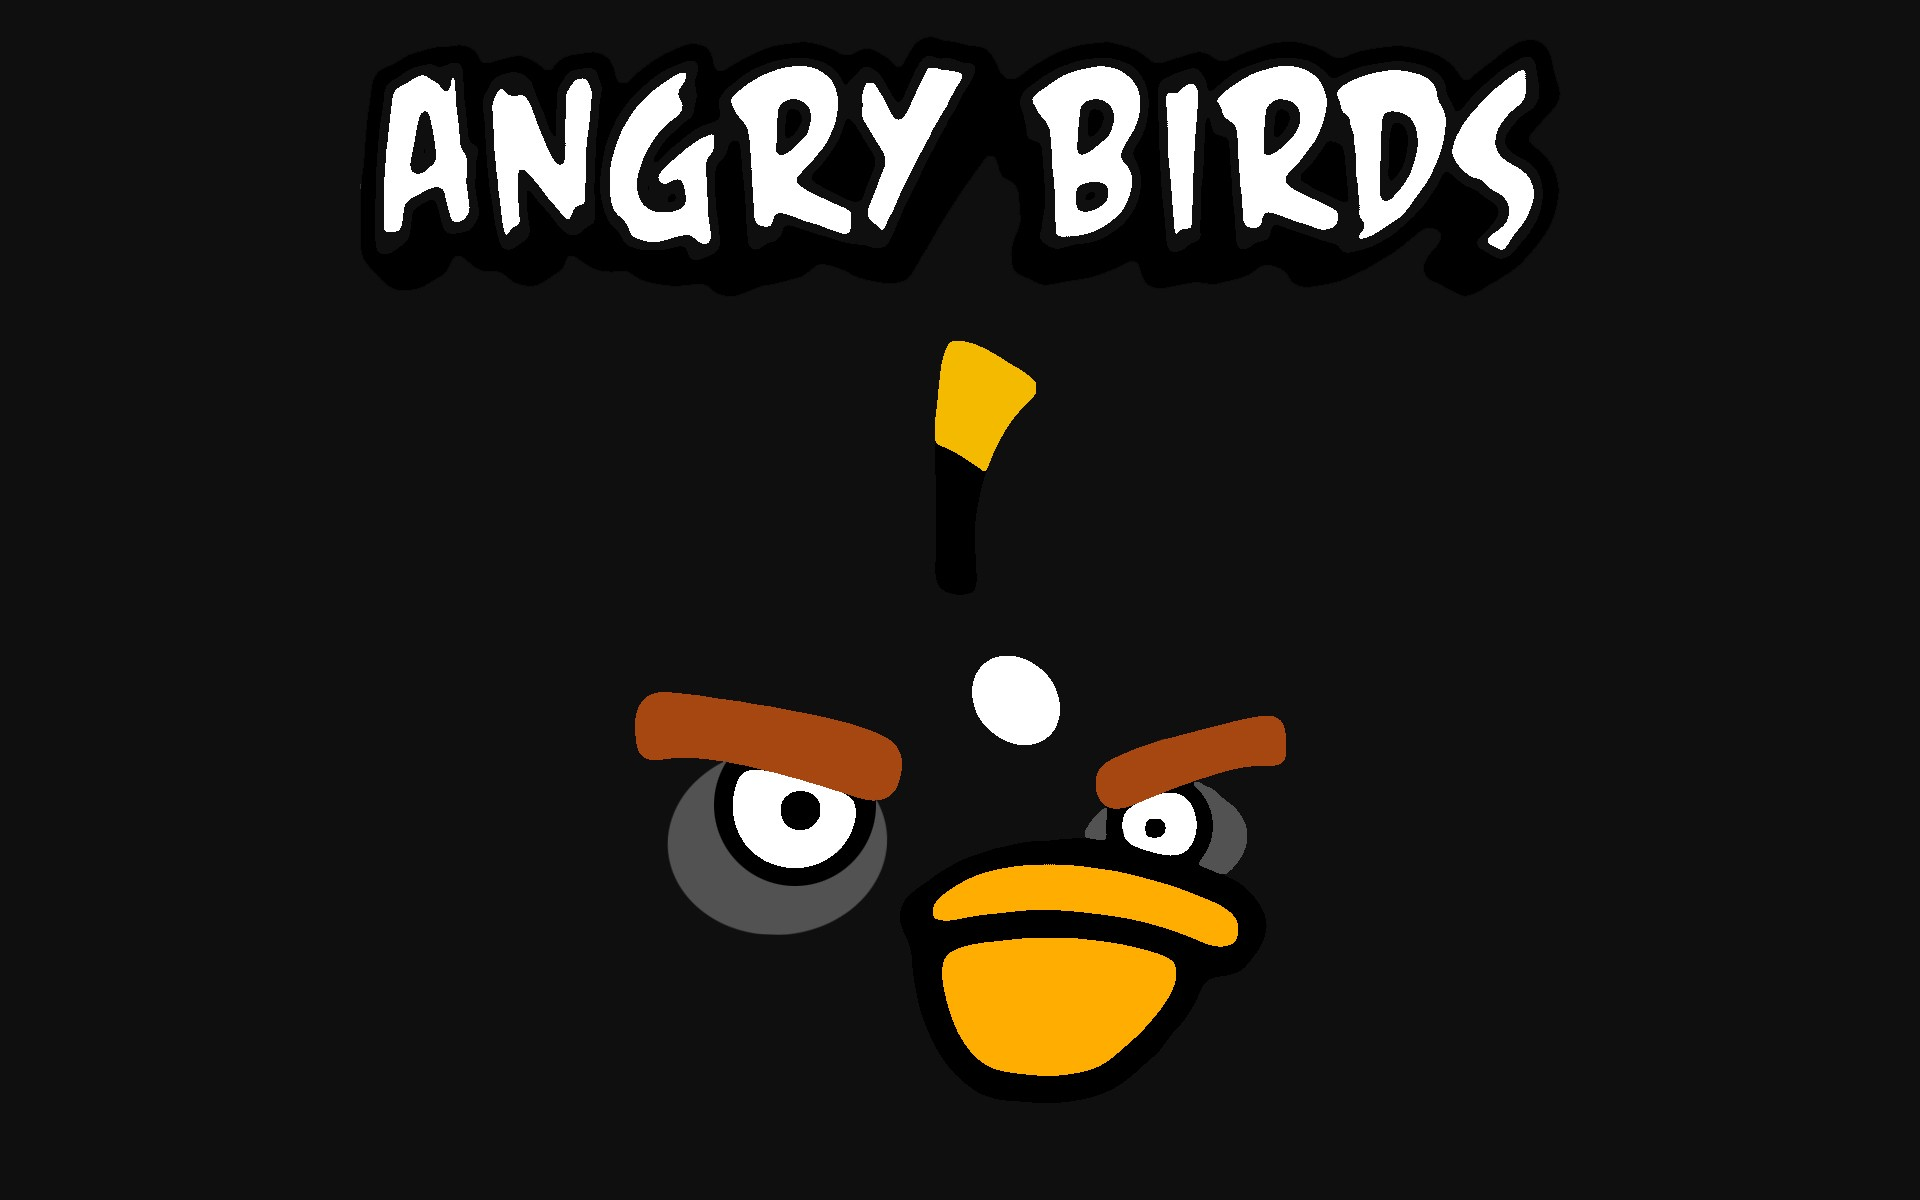 angry birds ipad iphone HD Wallpaper